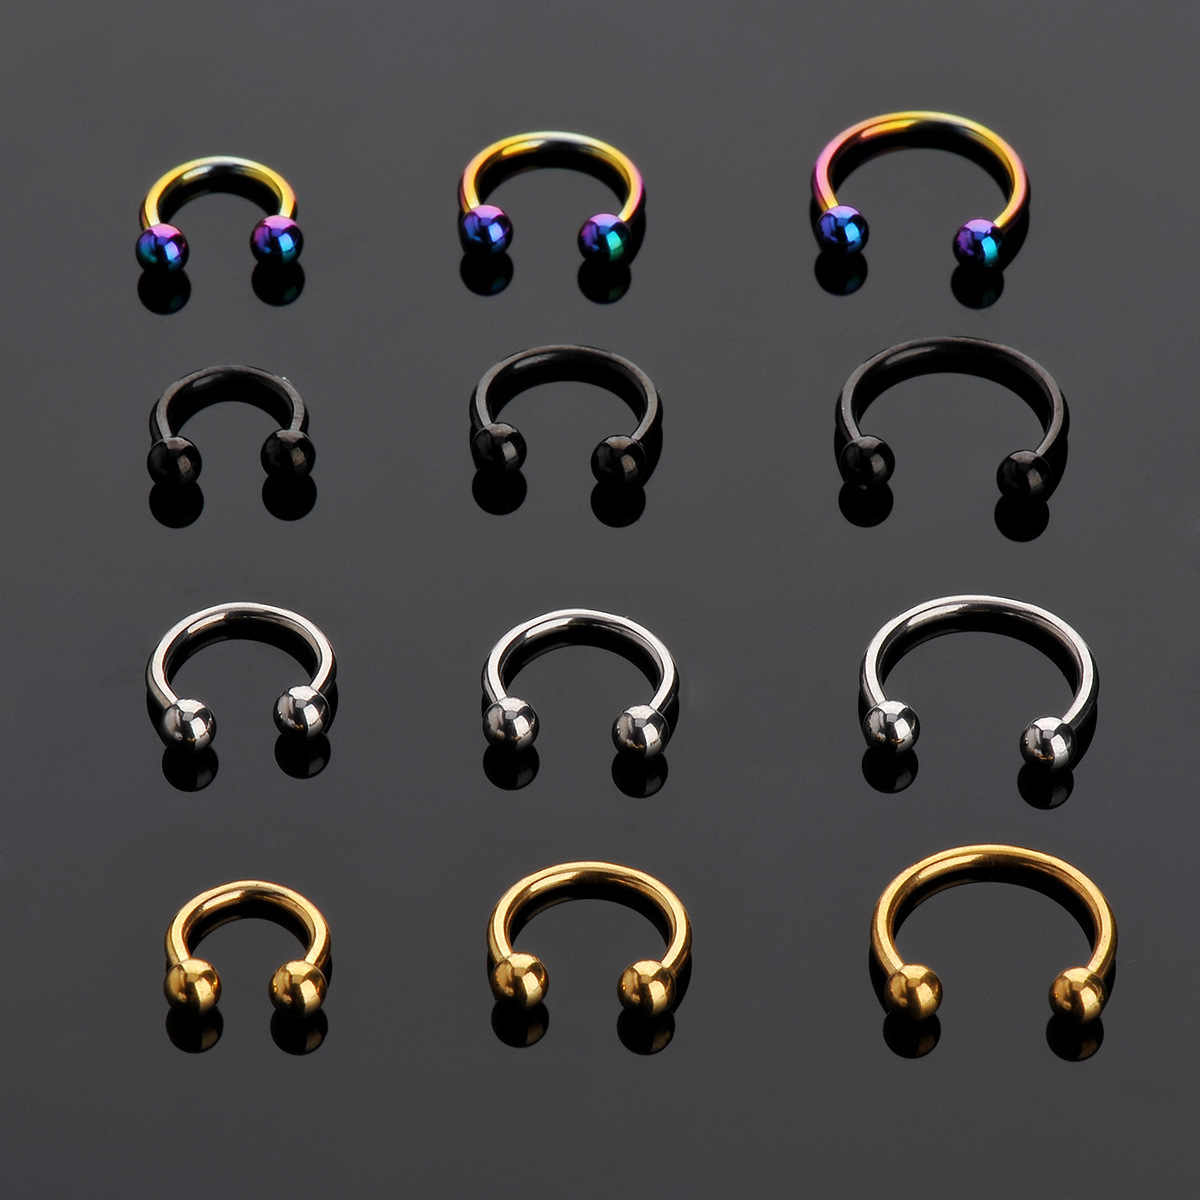 New Sale 2 Pcs Stainless Steel Nostril Nose Ring Lip Rings Earrings Sircular Piercing Ball Horseshoe Hoop Ring Body Jewelry